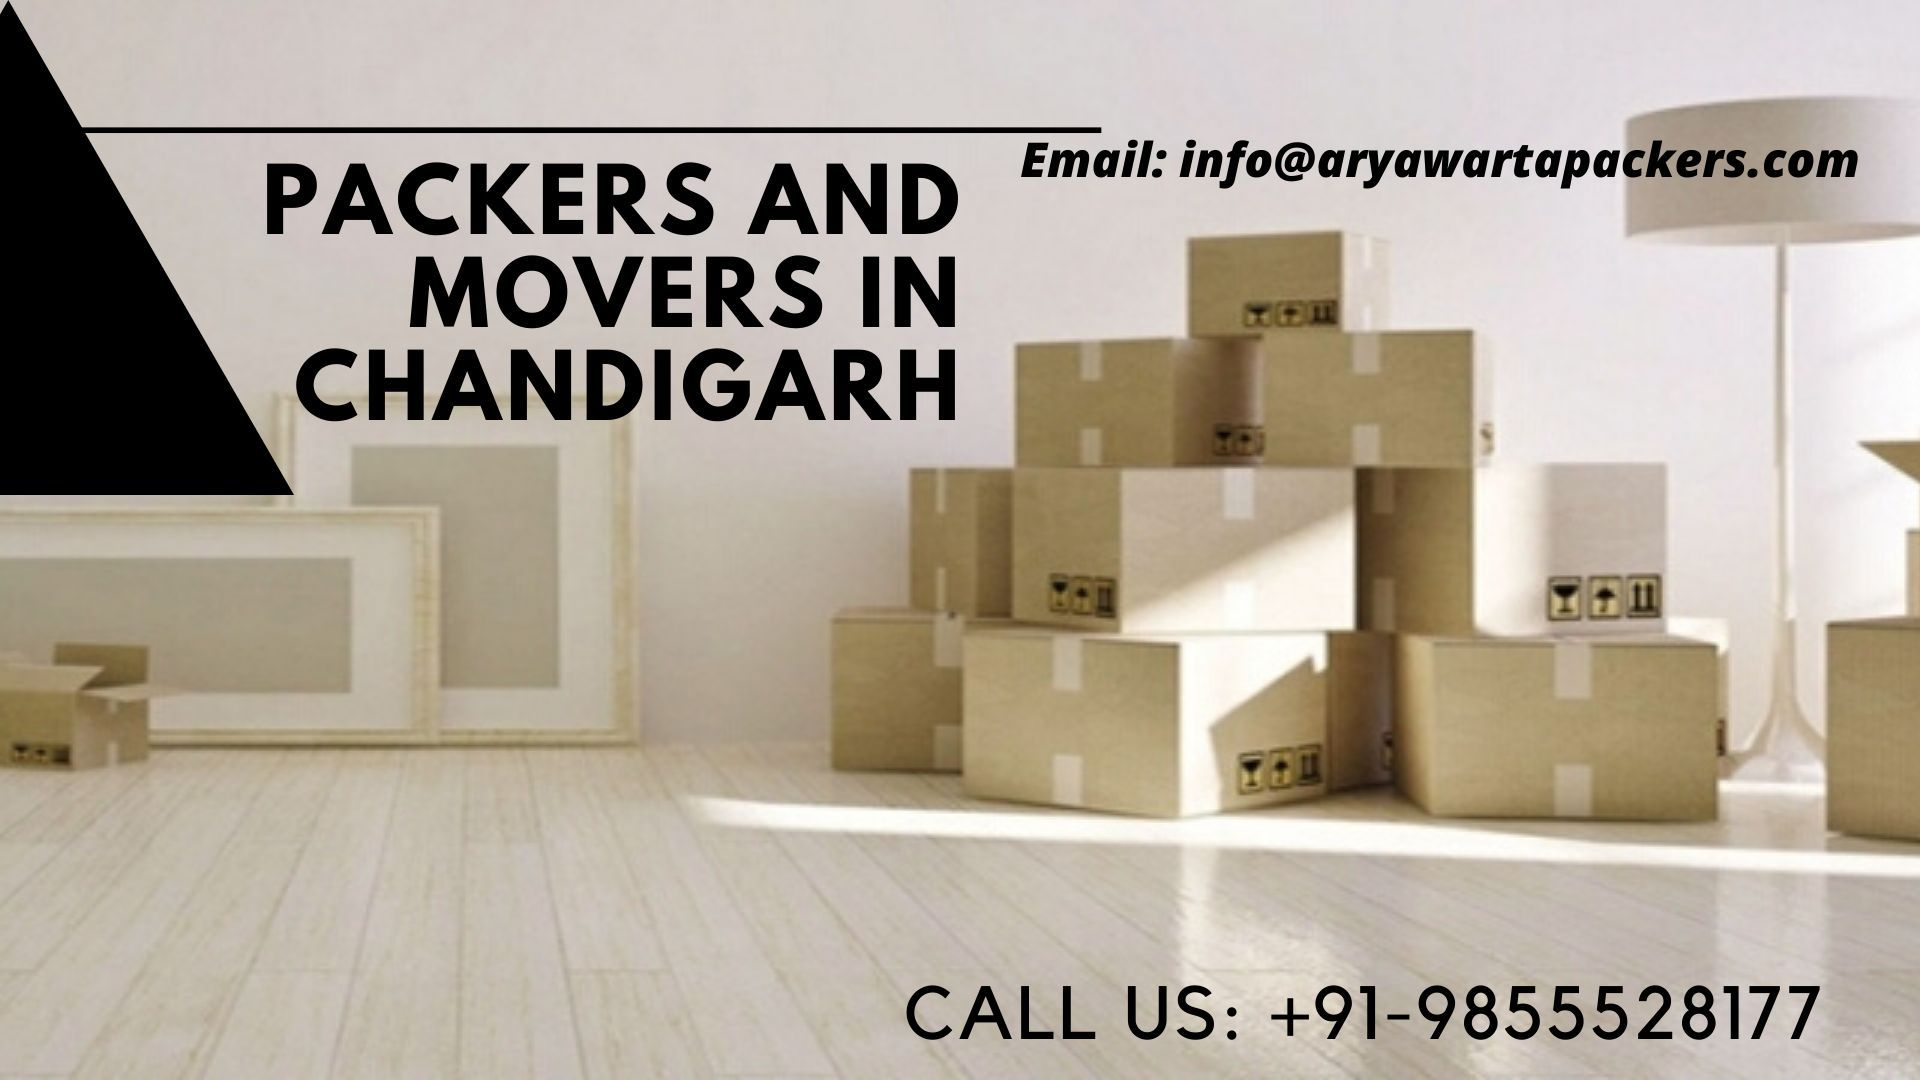 Packers and Movers in chandigarh Movers and Packers in chandigarh